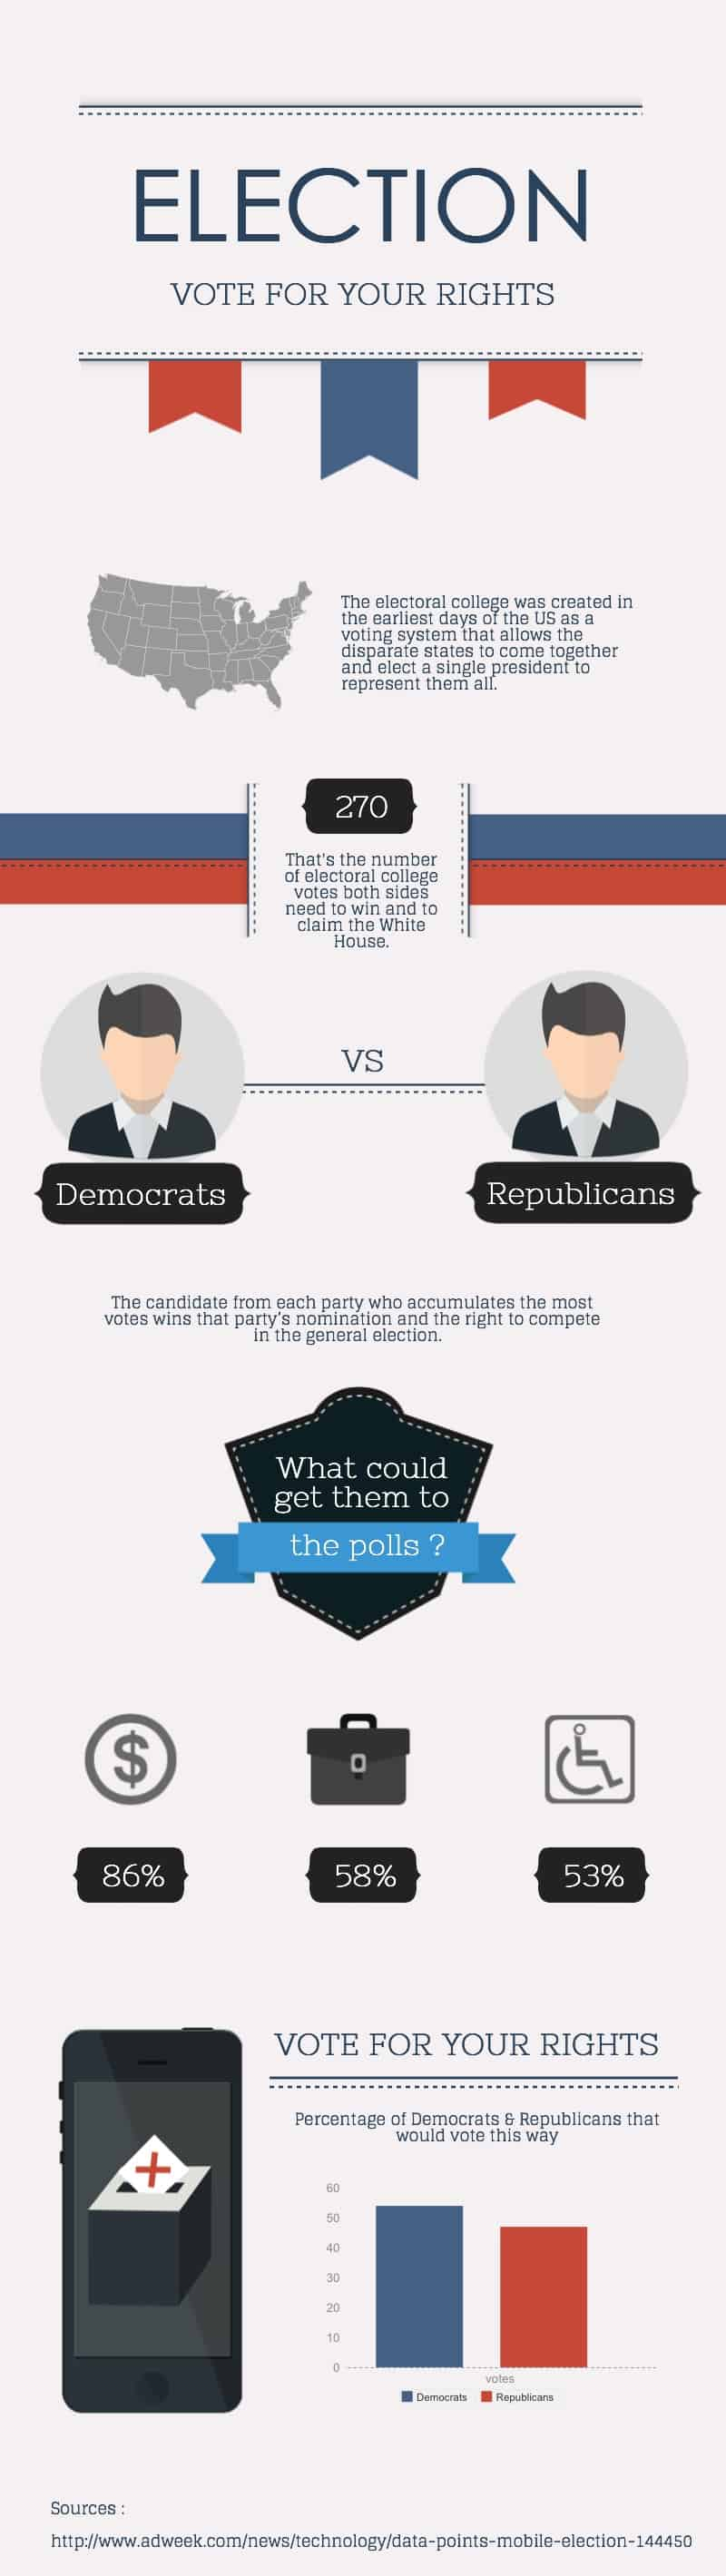 Election Infographic Template by Piktochart